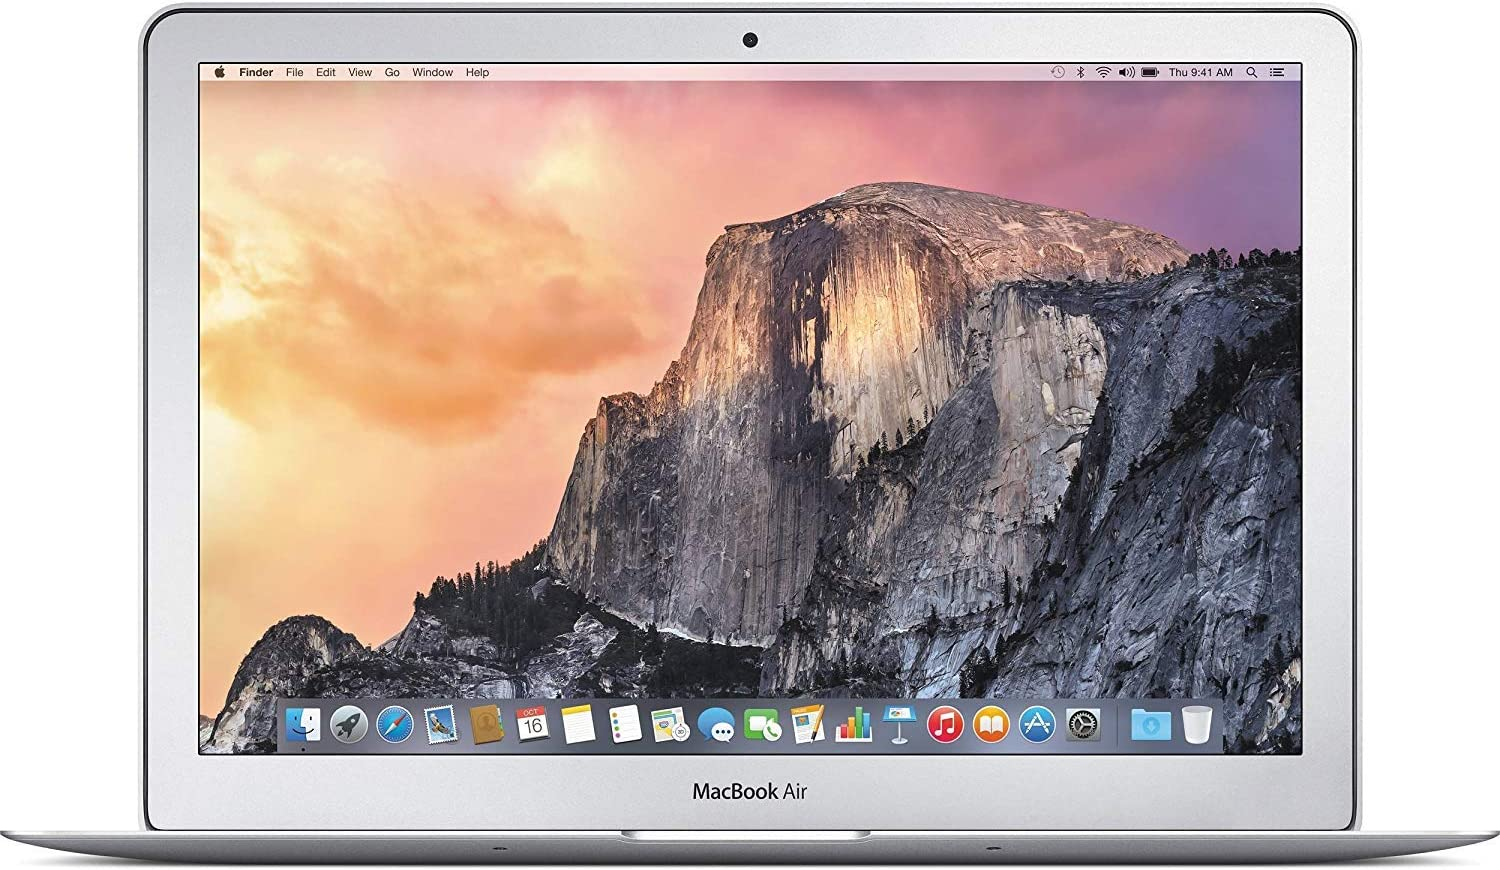 Apple MacBook Air MF068LL/A Intel Core i7-4650U X2 1.7GHz 8GB 128GB, Silver (Renewed)